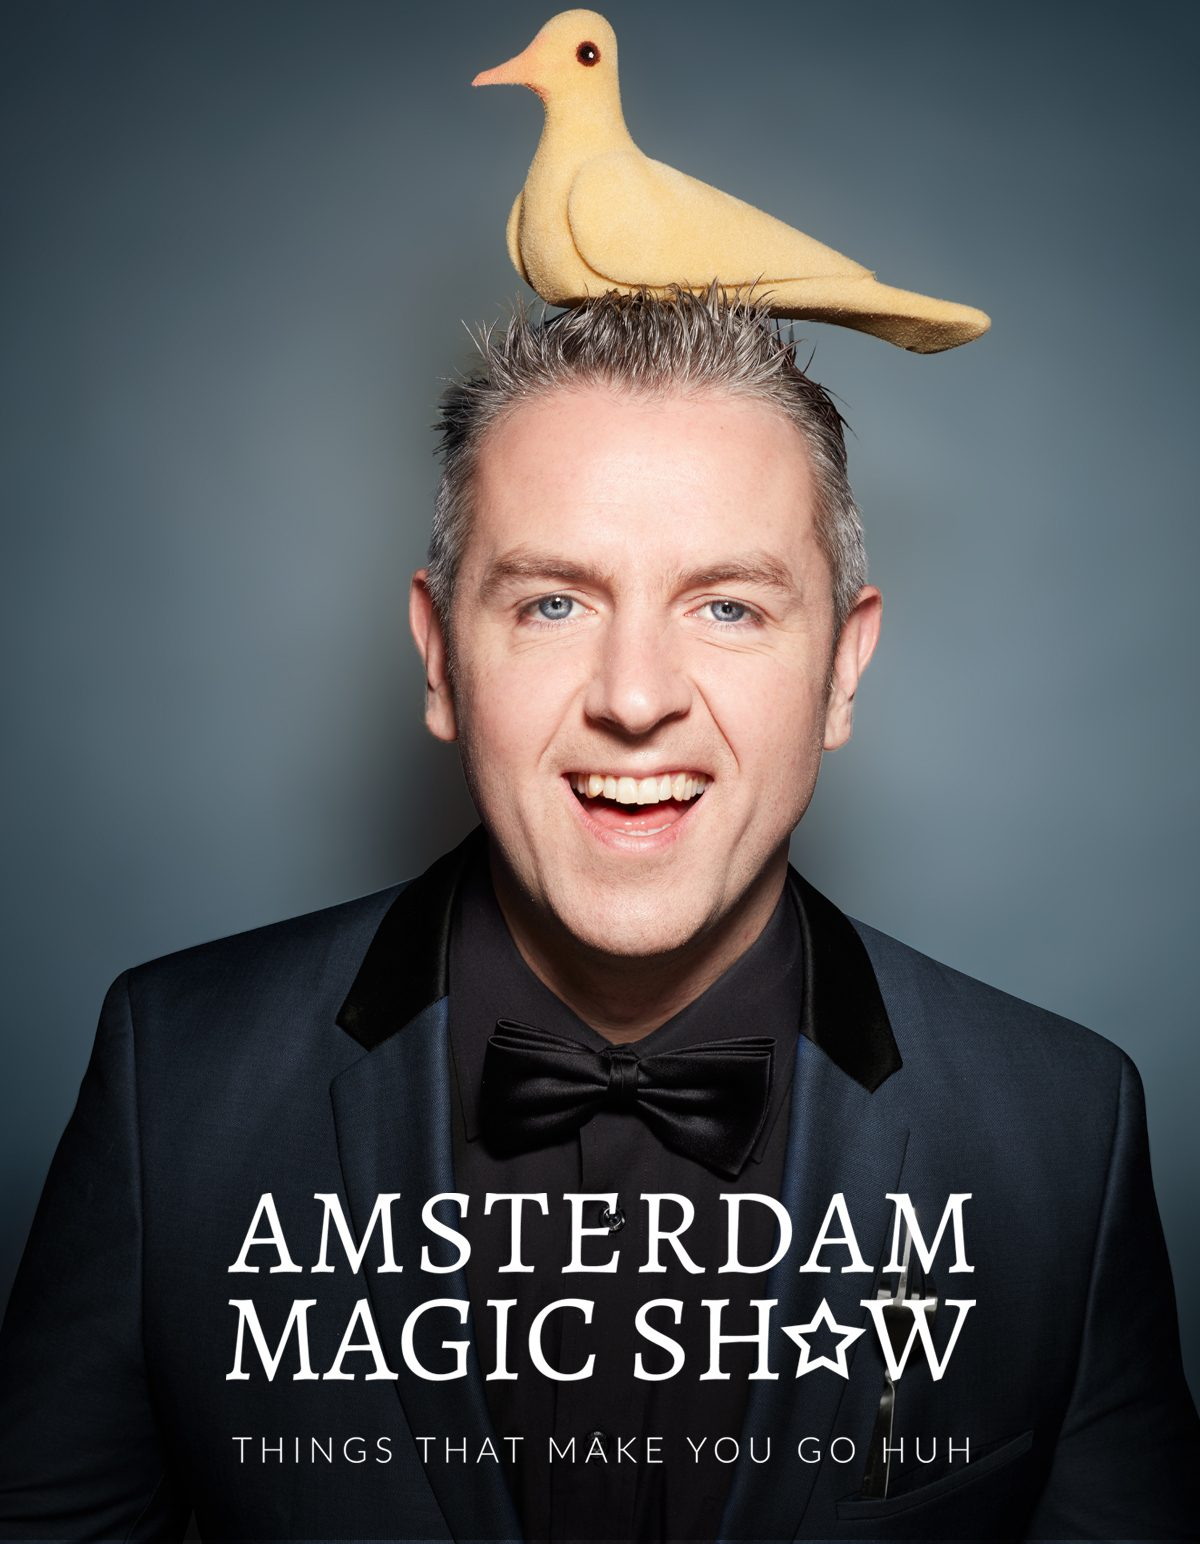 Amsterdam Magic Show Alex Blackwood